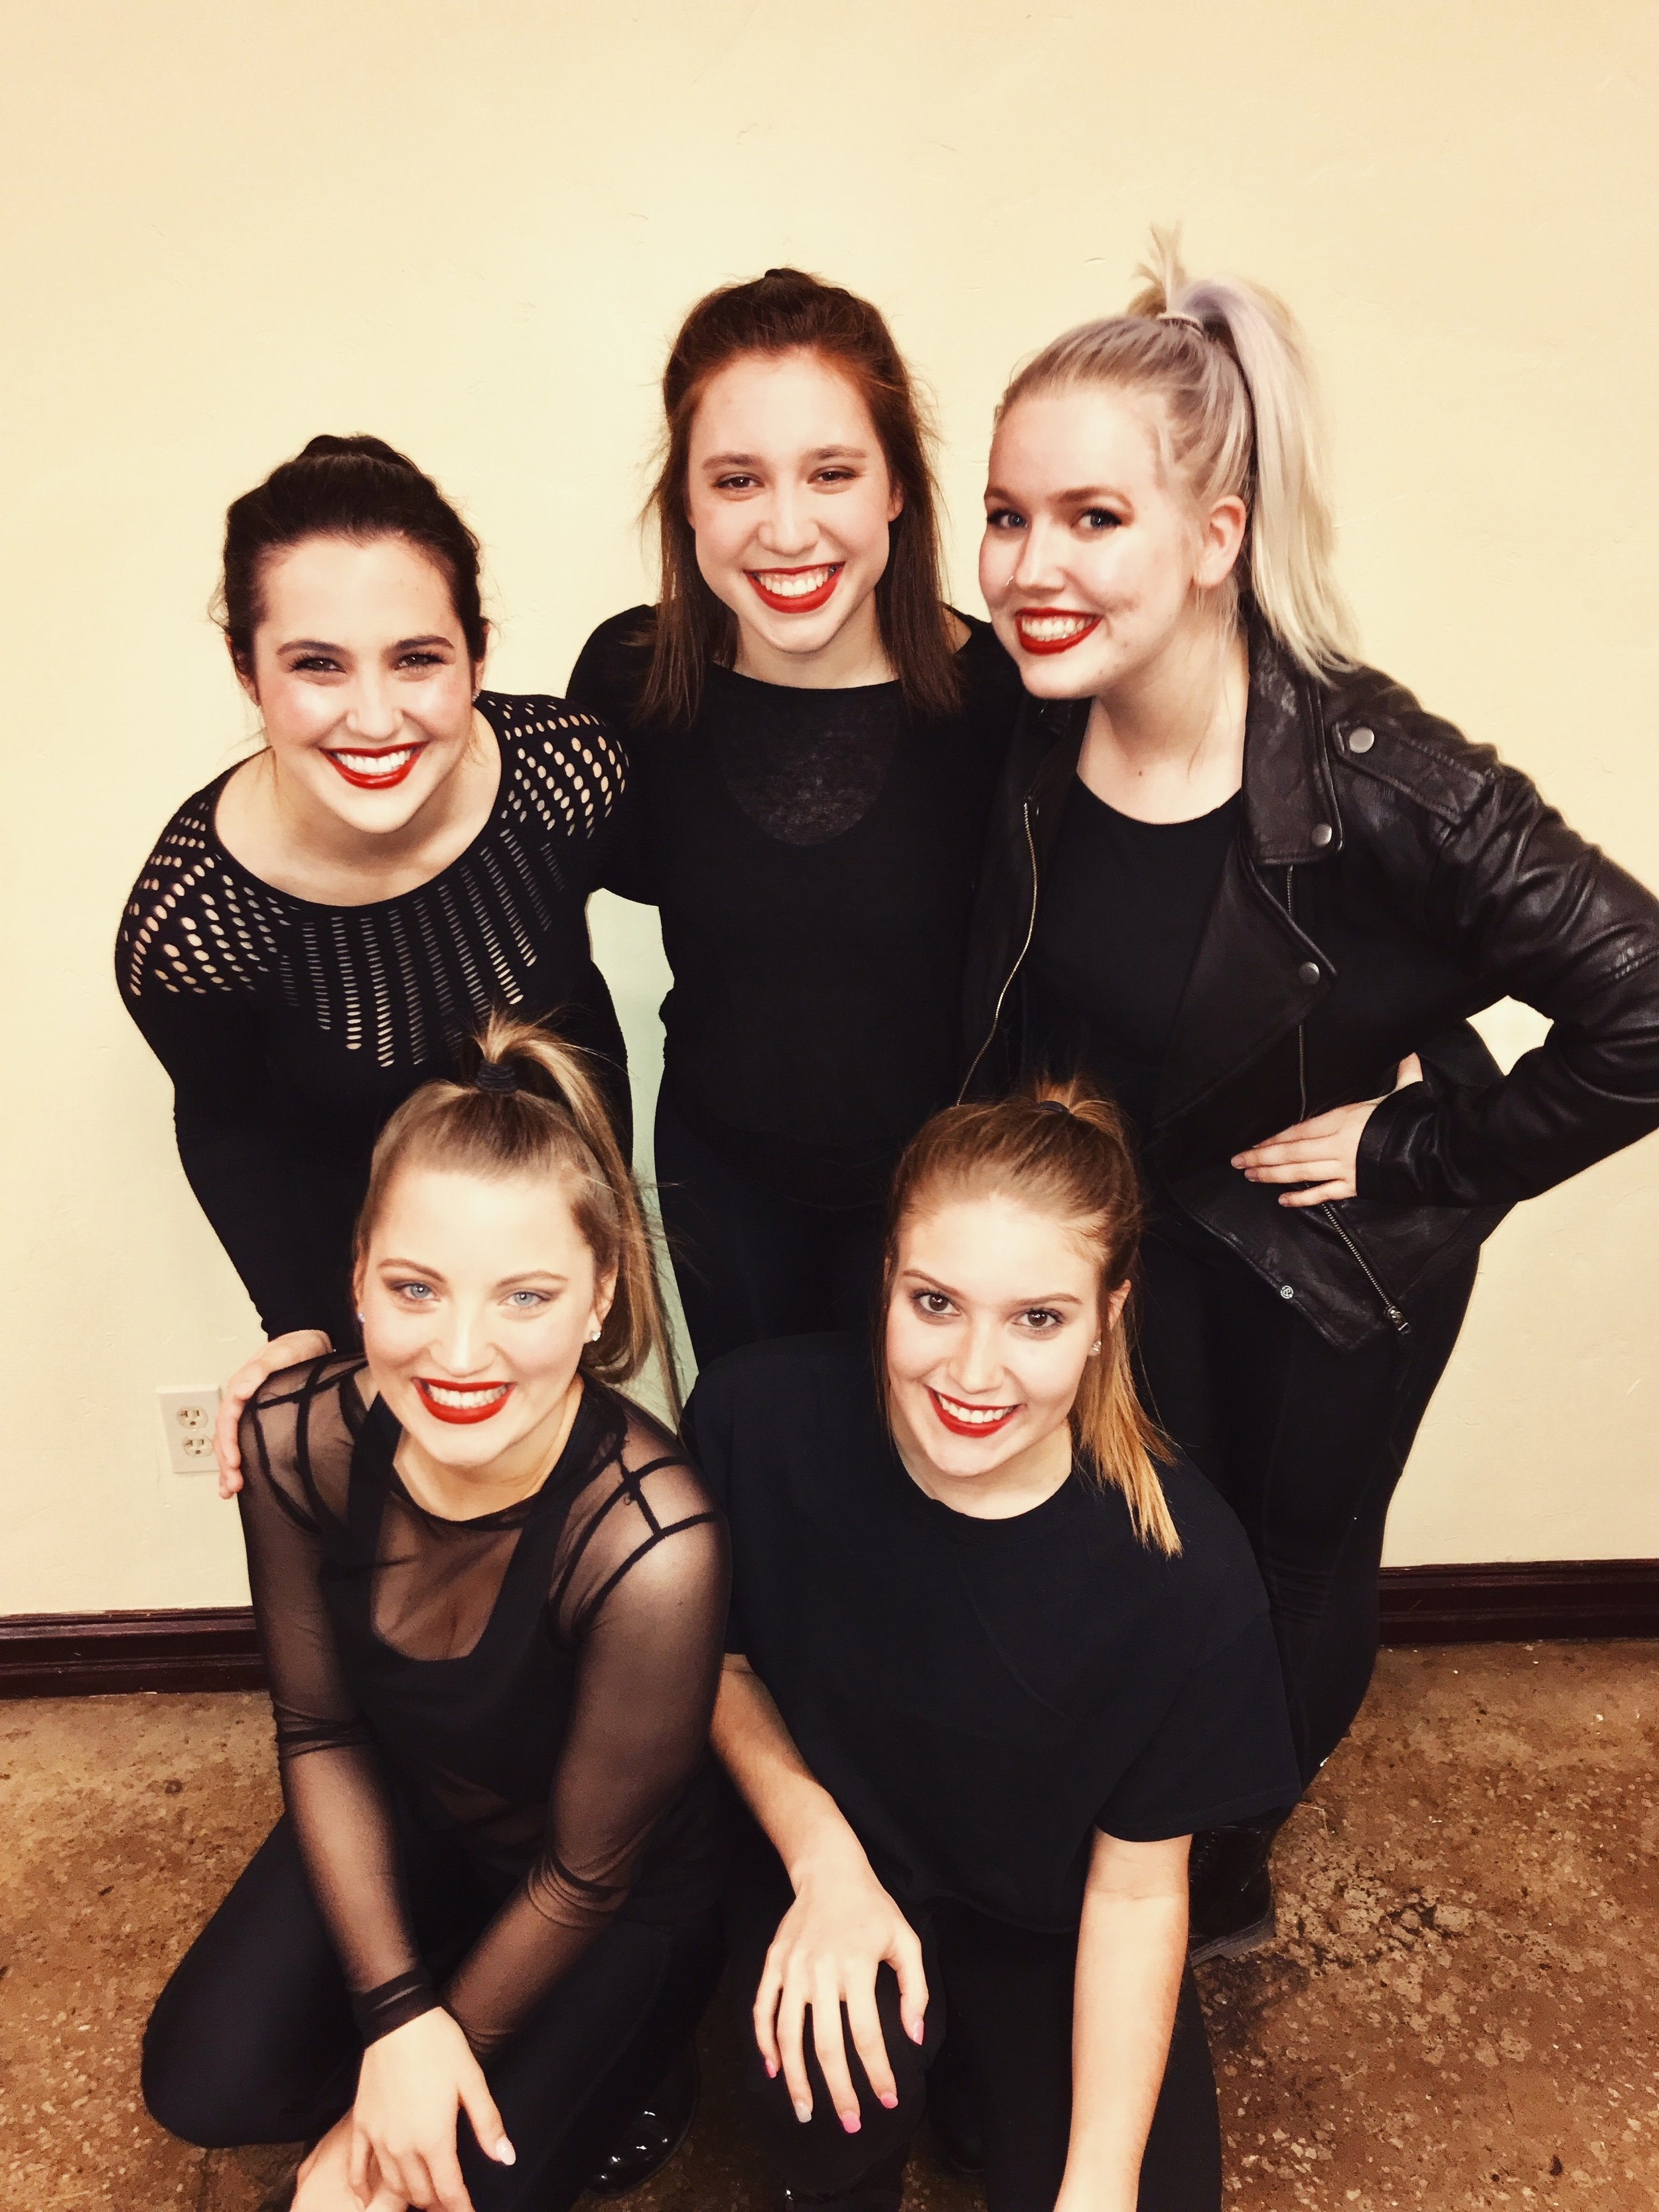 before a dance competition